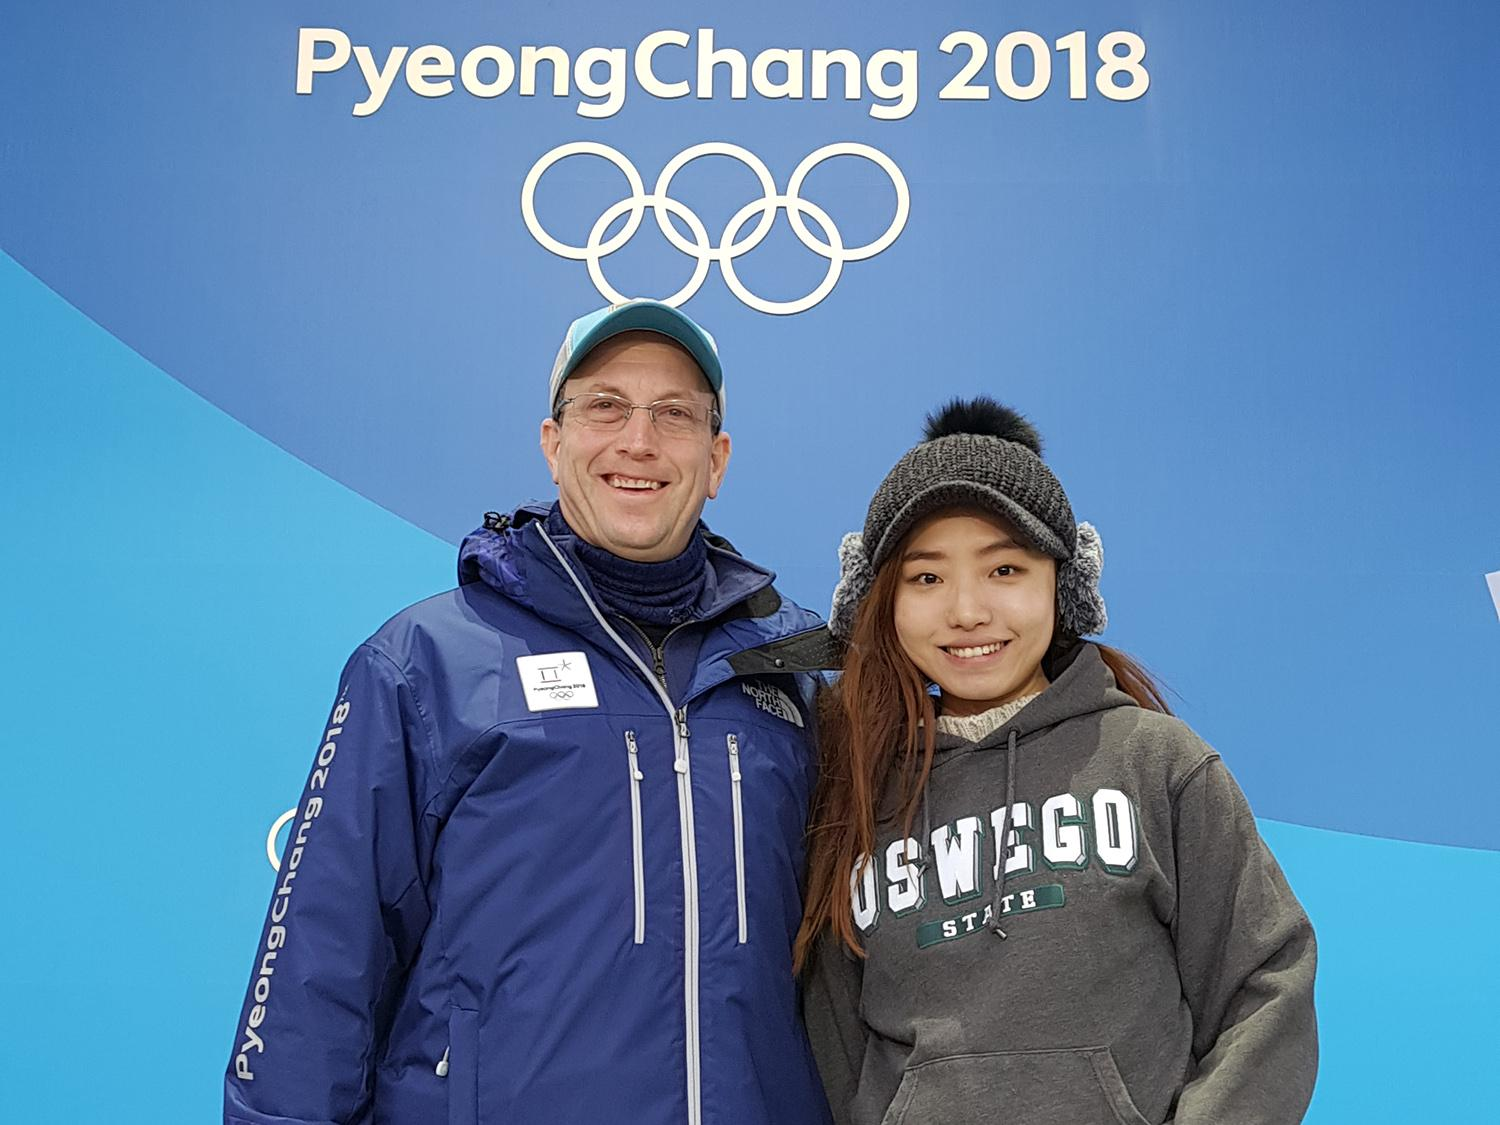 Derrick Salisbury and Nicky GaWon Kim represent an Oswego connection at the 2018 Winter Olympics